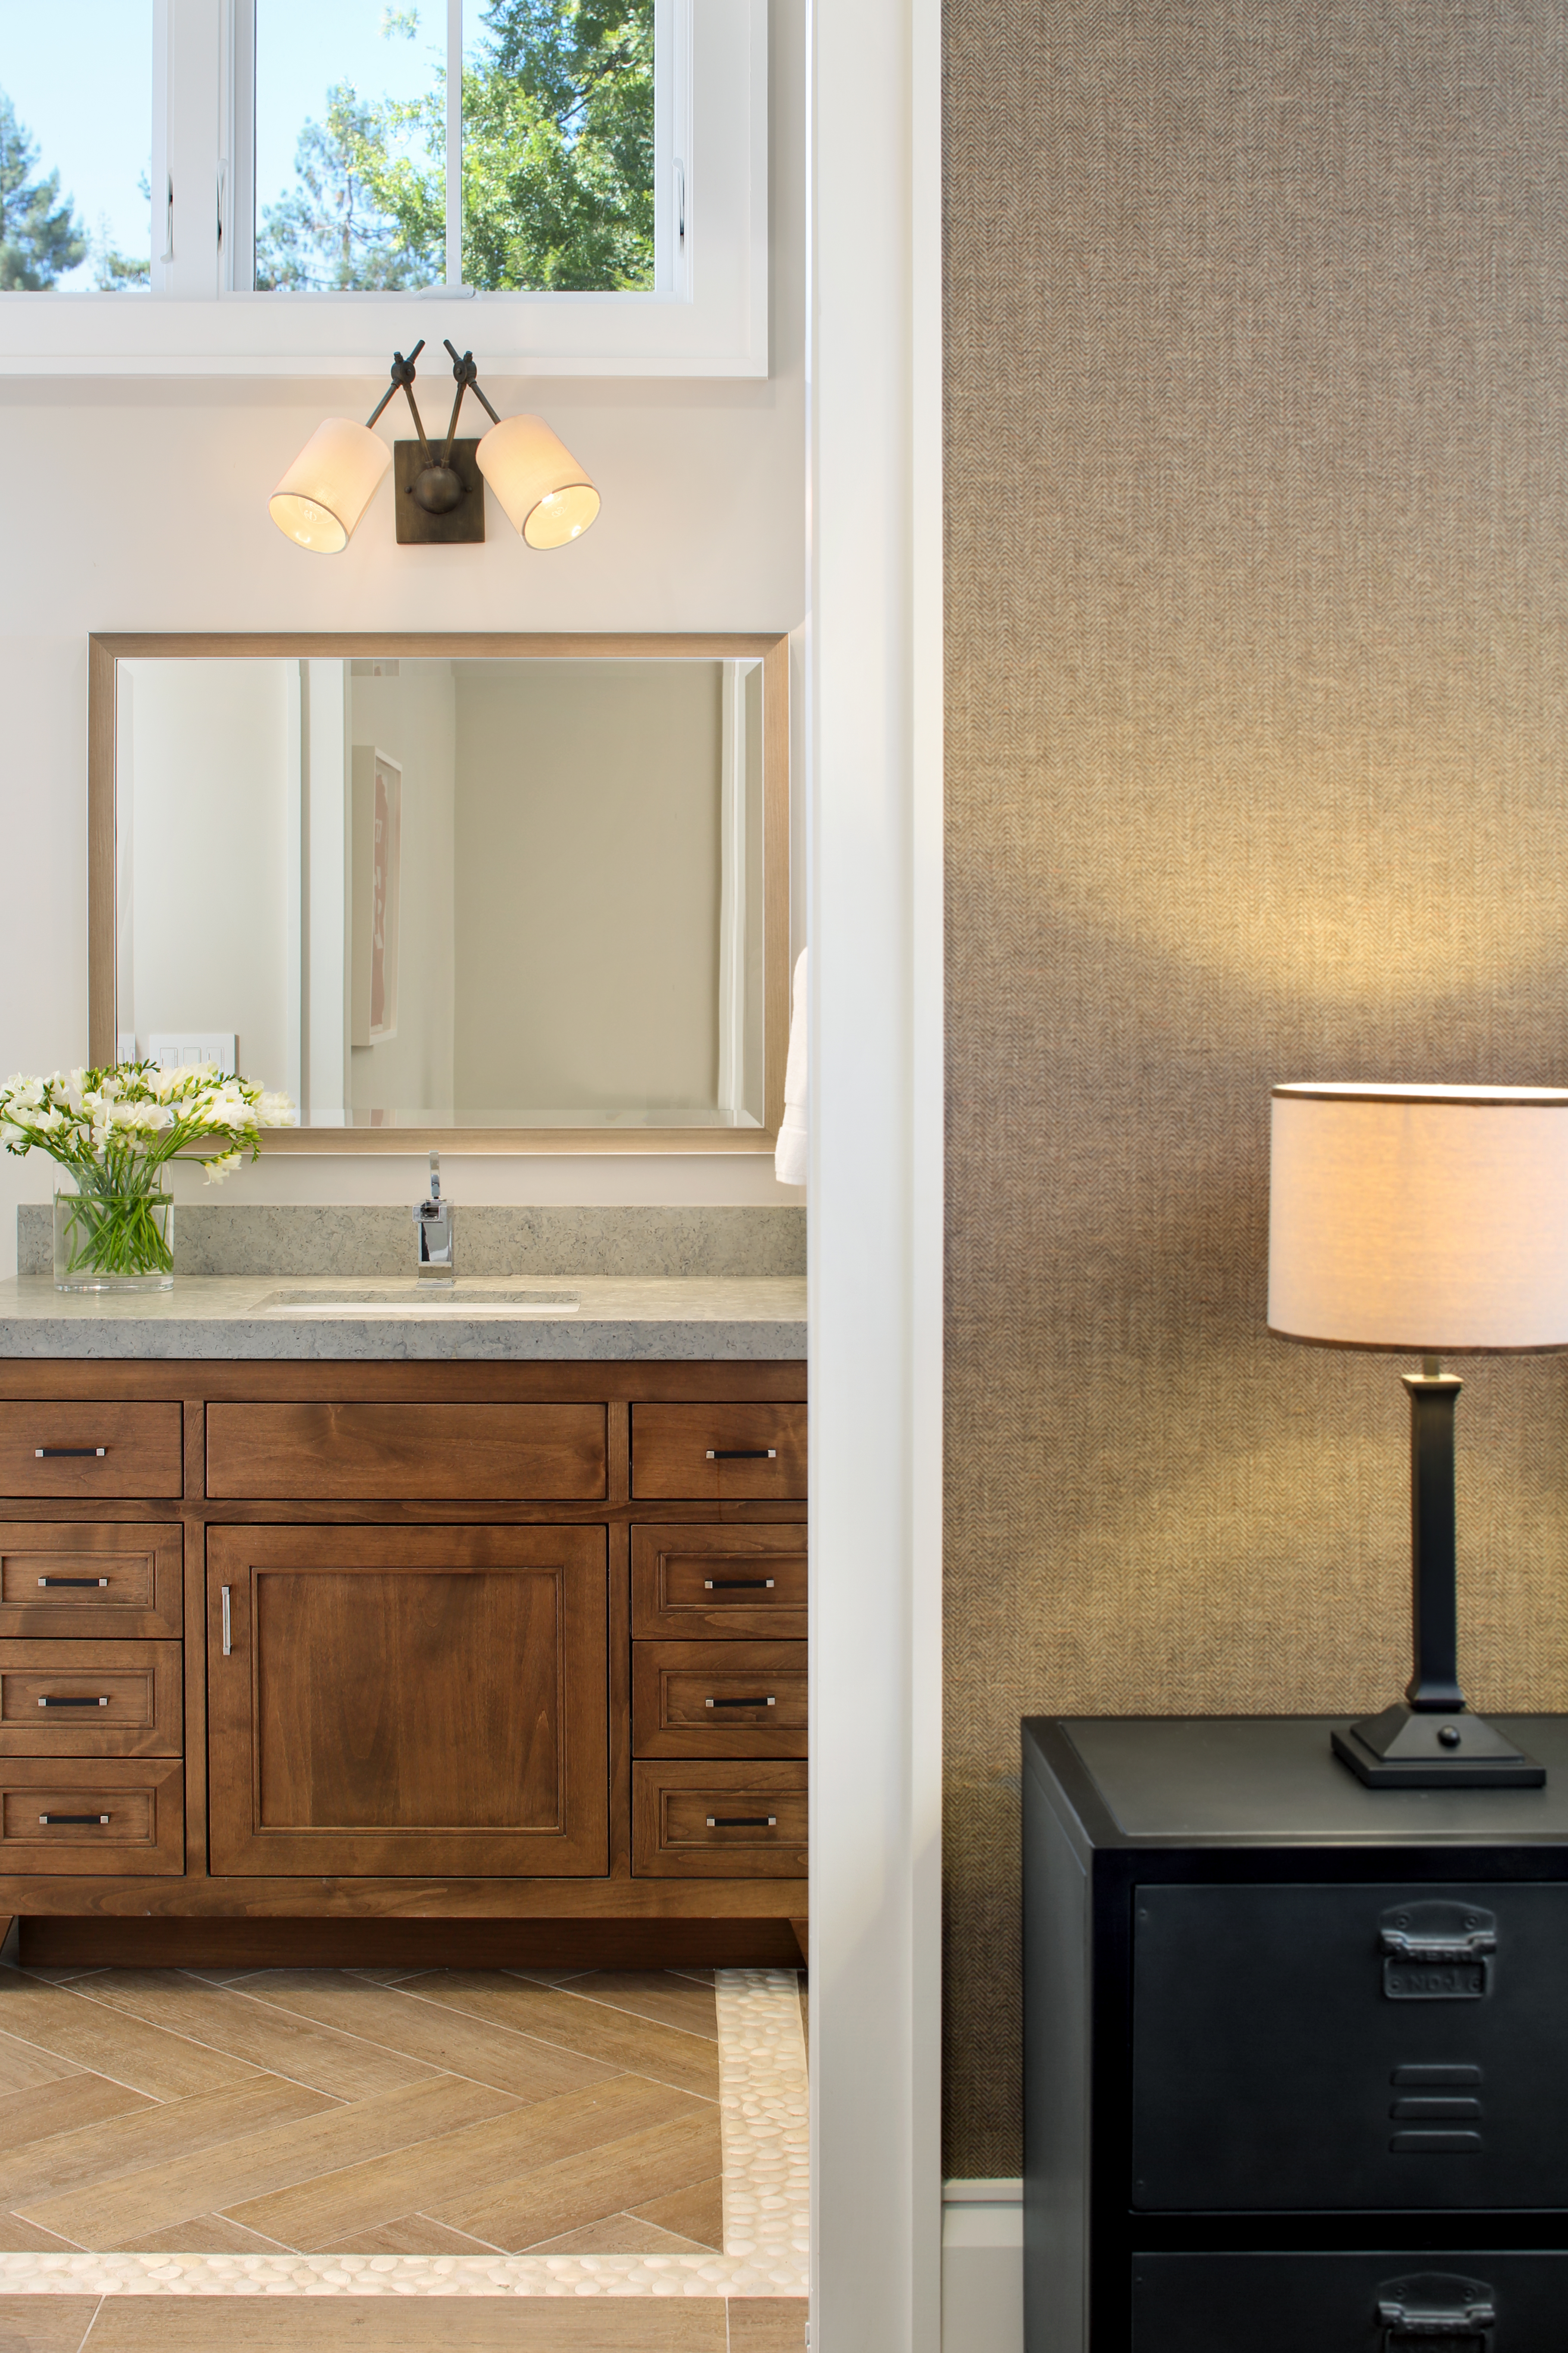 Enter the adjoining bathroom, which features stylish neutrals and an abundance of natural light. Atop the wood vanity is a slab fromBenjamin Gray.